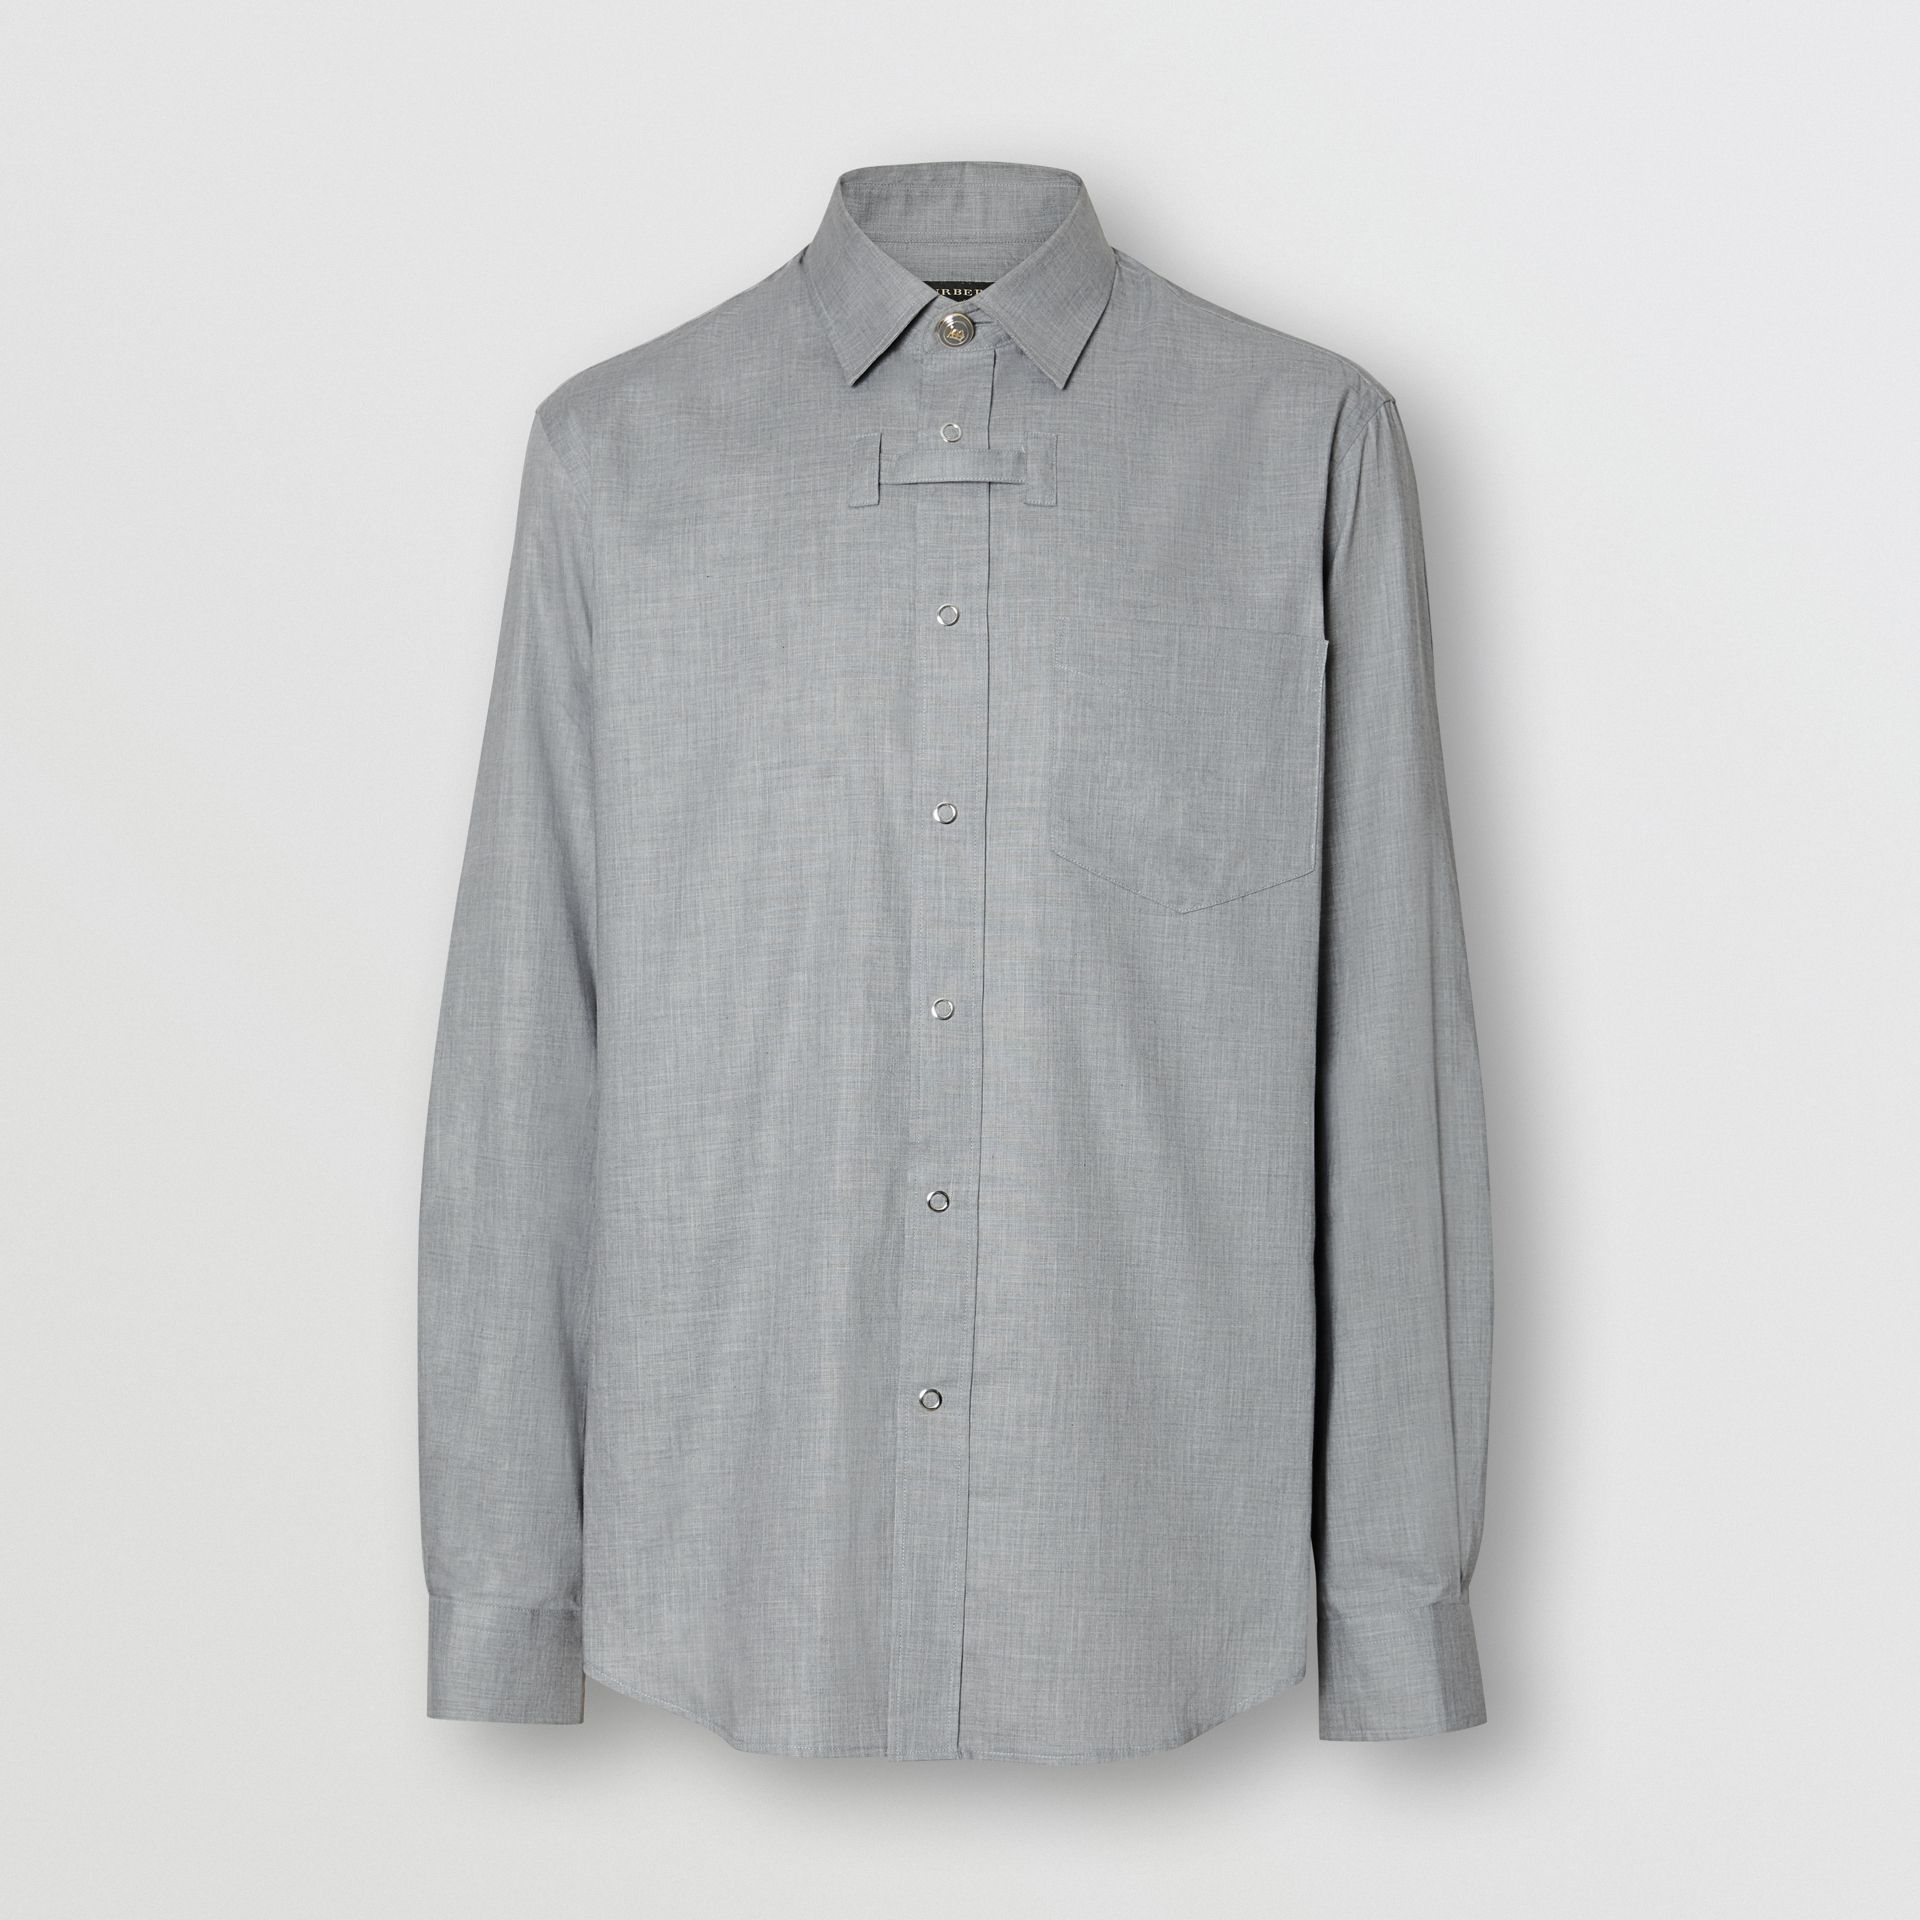 Monogram Button Cotton Shirt in Light Grey | Burberry - gallery image 2